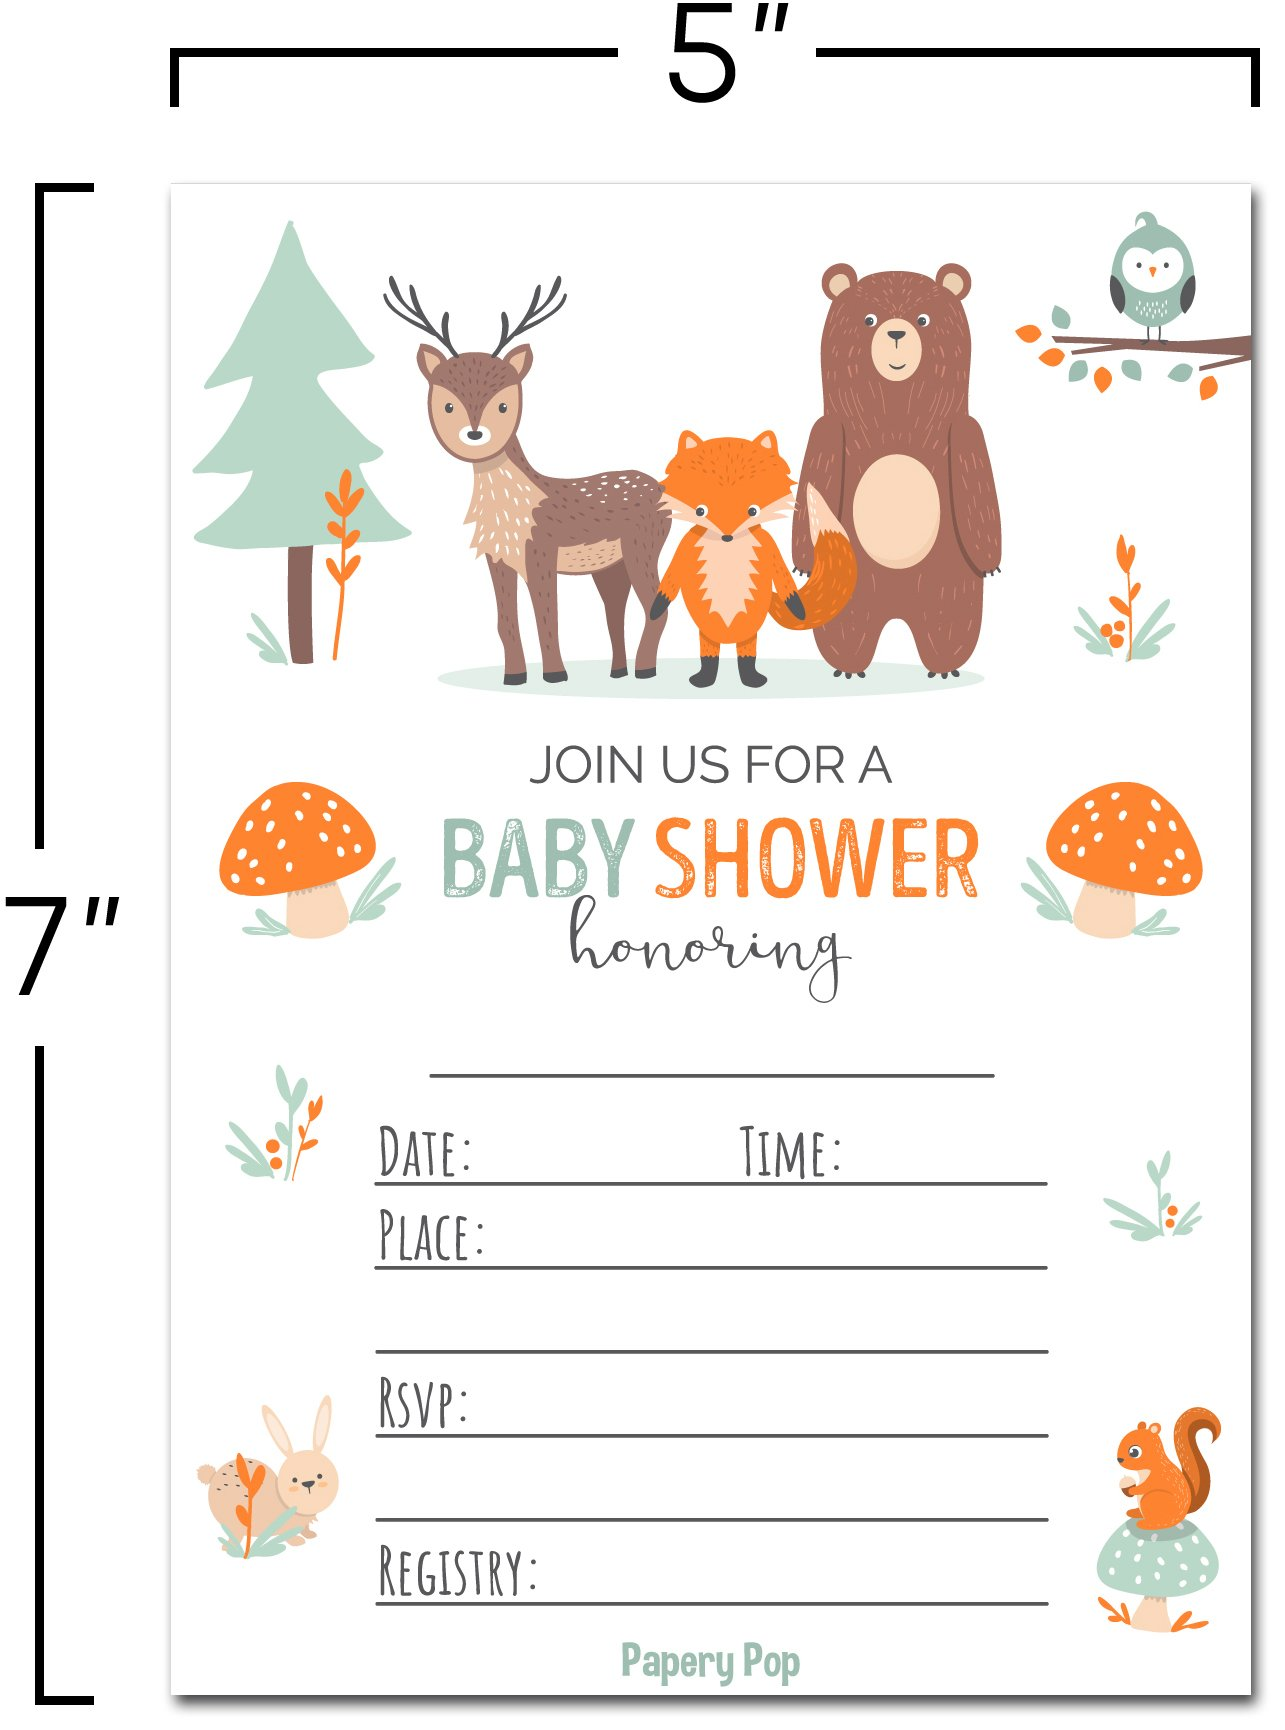 Papery Pop 30 Baby Shower Invitations Boy or Girl with Envelopes (30 Pack) - Gender Neutral - Fits Perfectly with Woodland Animals Baby Shower Decorations and Supplies by Papery Pop (Image #4)